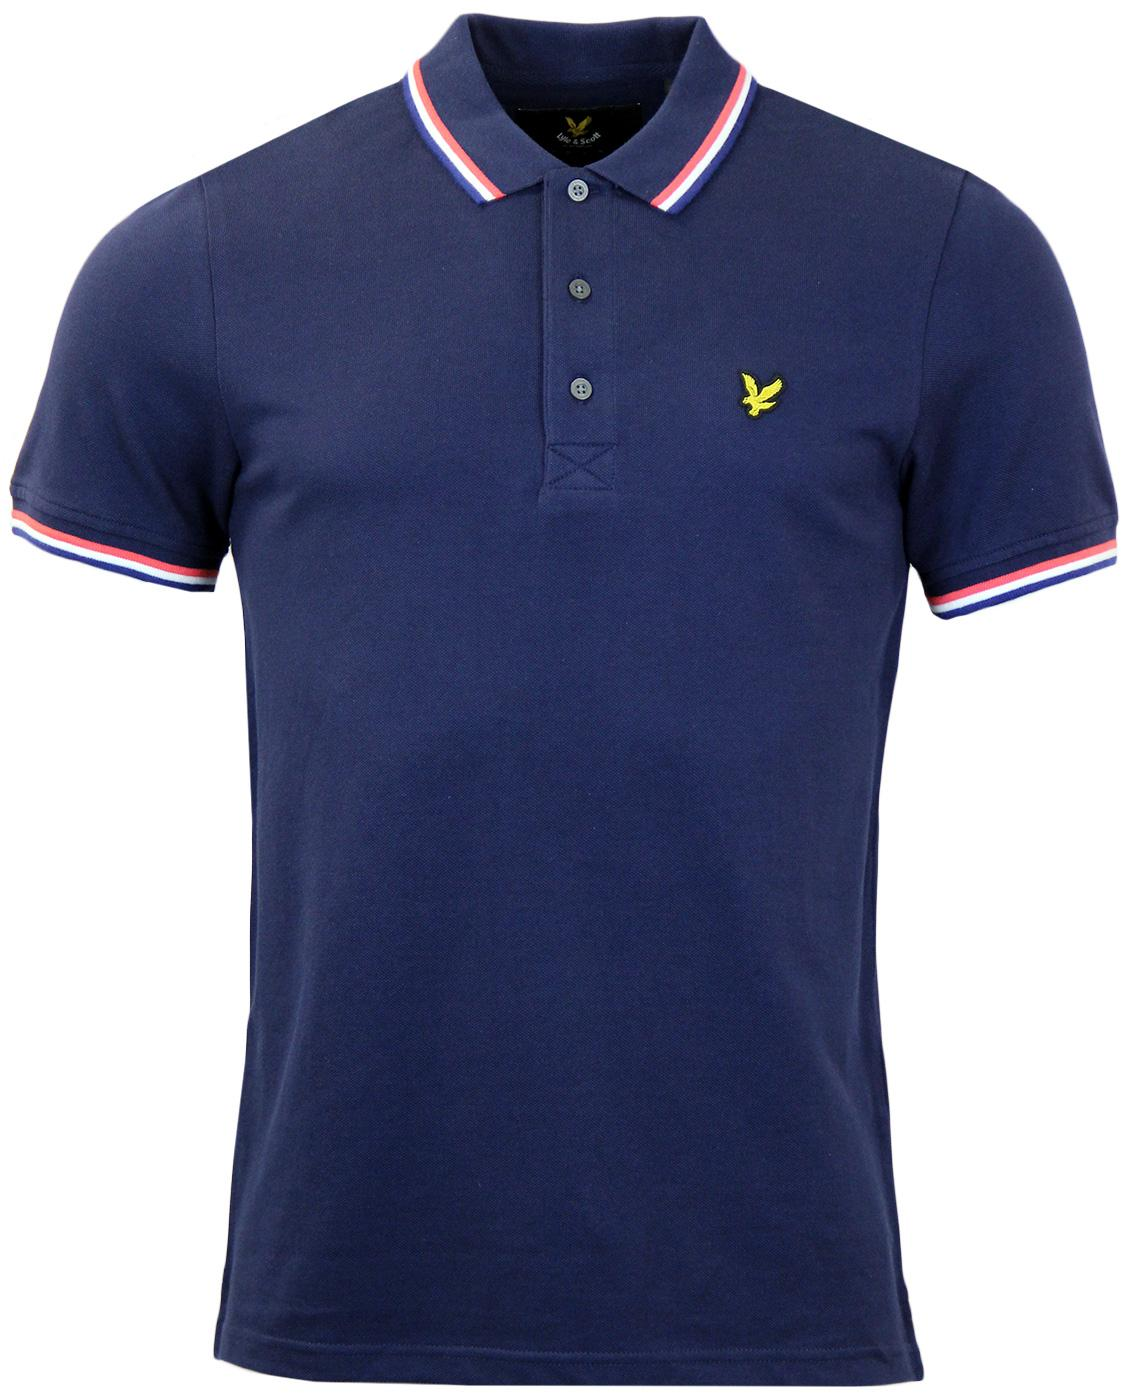 LYLE & SCOTT Classic Retro Tipped Pique Polo Shirt